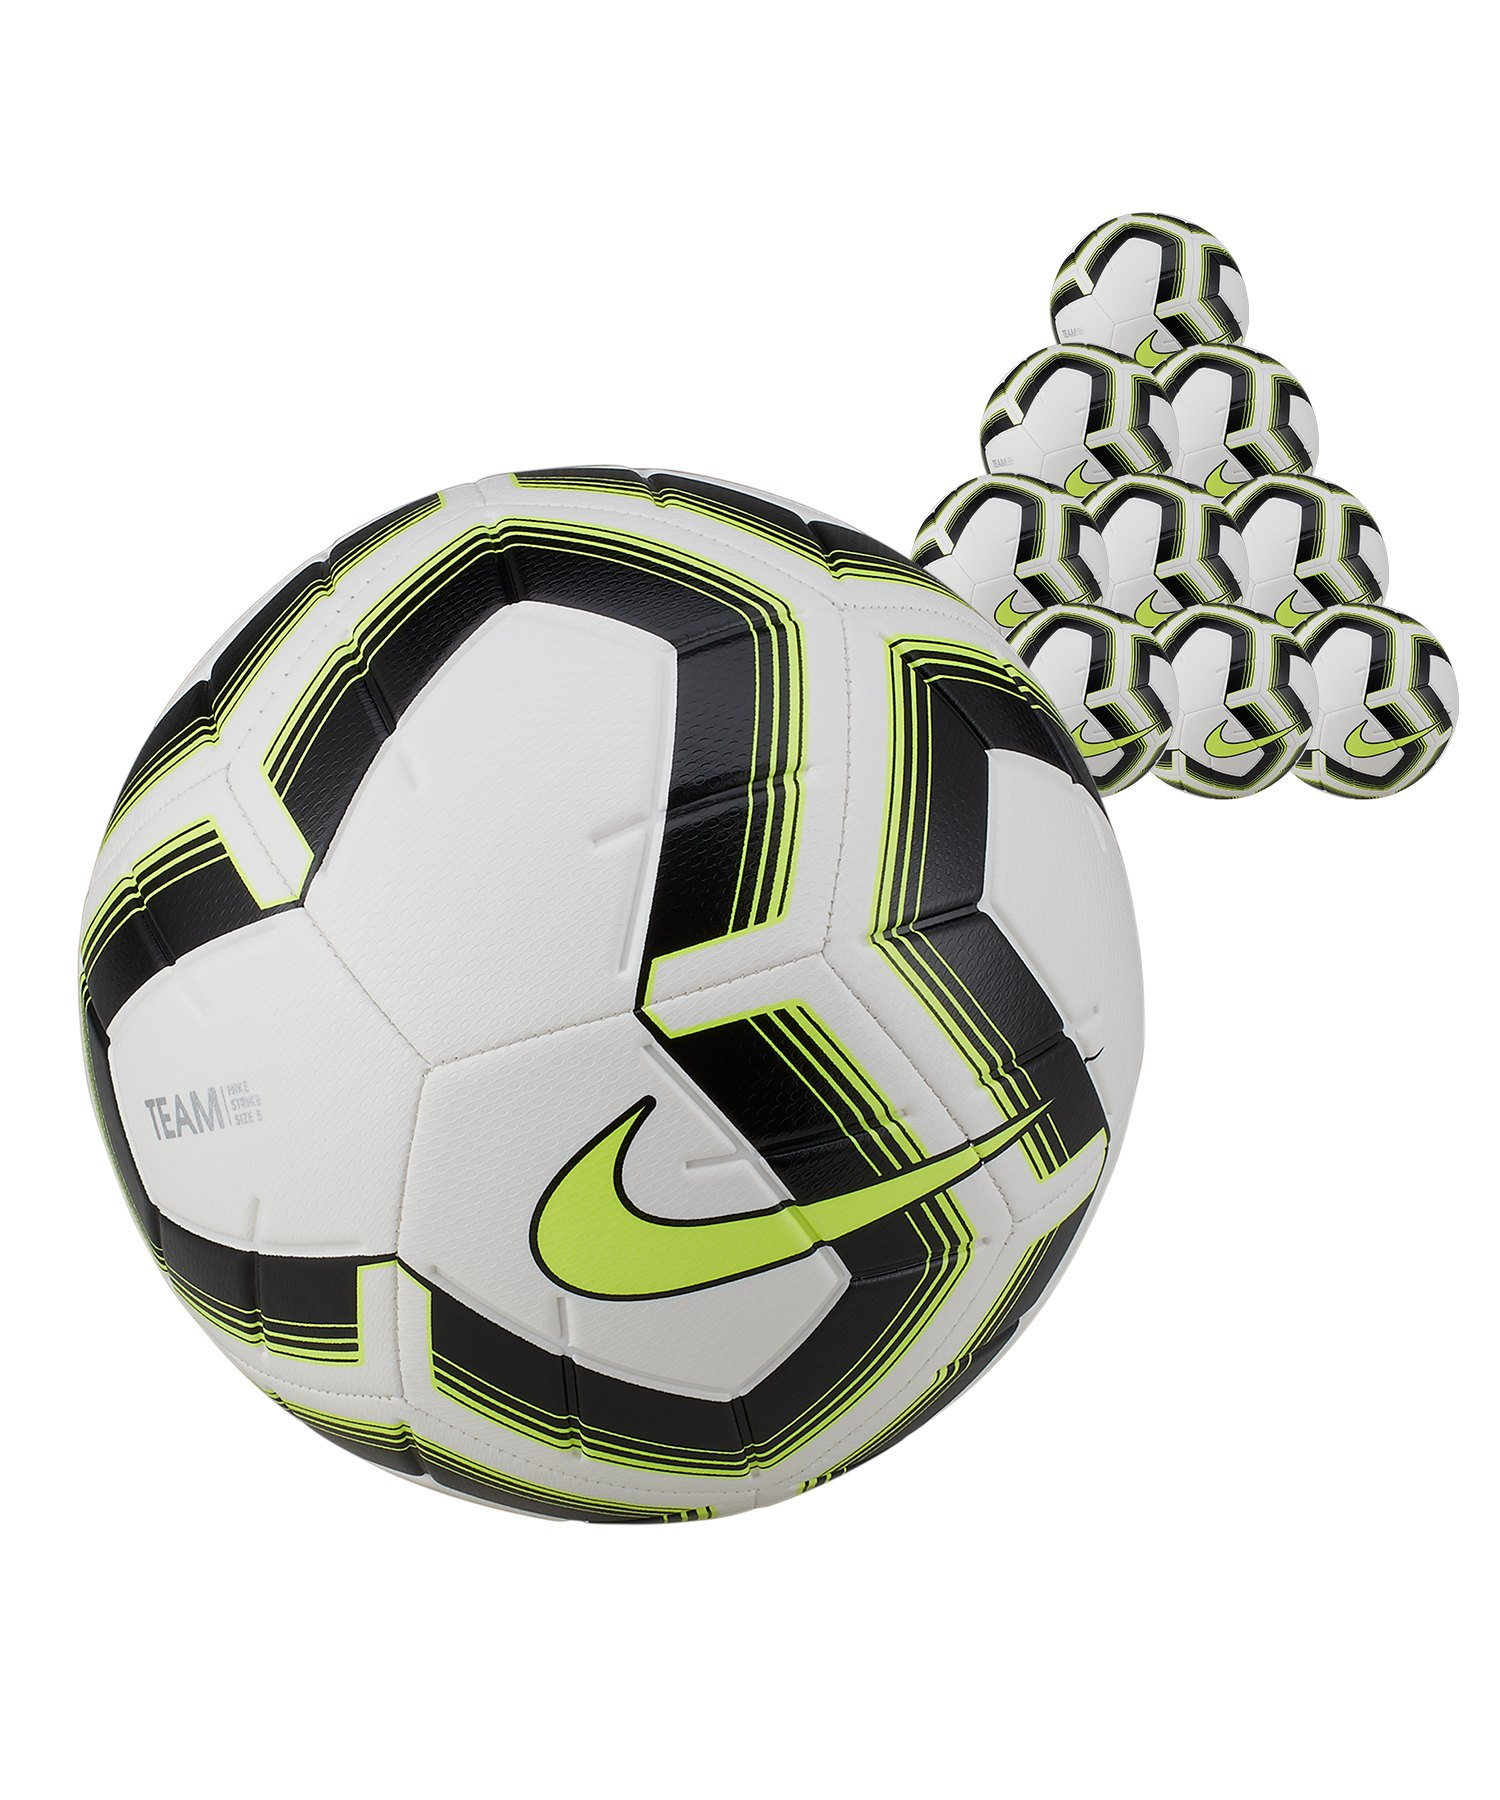 Nike Strike Team 20x Trainingsball Gr.4 Weiss F102 - weiss